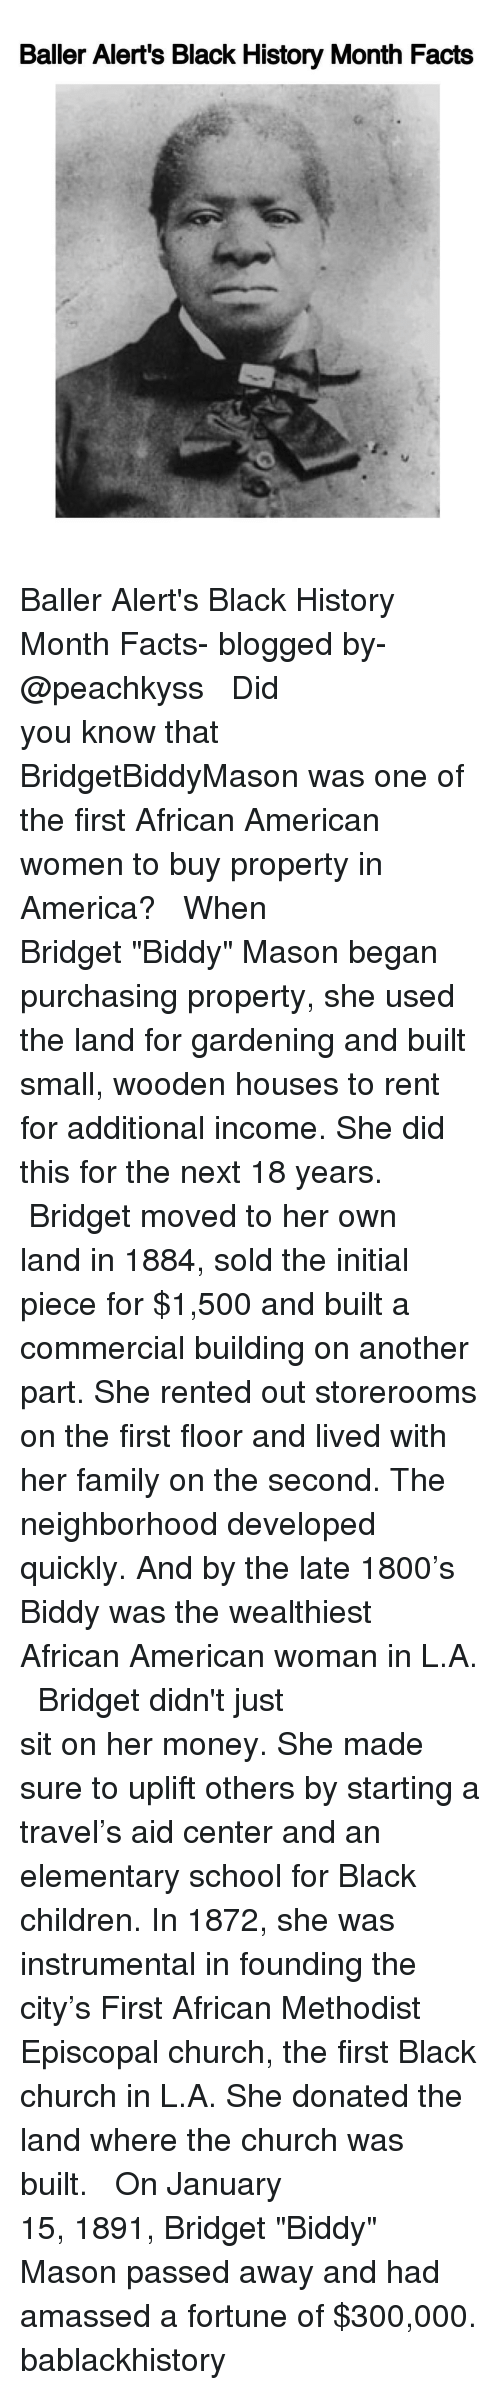 """Solde: Baller Alert's Black History Month Facts Baller Alert's Black History Month Facts- blogged by- @peachkyss ⠀⠀⠀⠀⠀⠀⠀⠀⠀ ⠀⠀⠀⠀⠀⠀⠀⠀⠀ Did you know that BridgetBiddyMason was one of the first African American women to buy property in America? ⠀⠀⠀⠀⠀⠀⠀⠀⠀ ⠀⠀⠀⠀⠀⠀⠀⠀⠀ When Bridget """"Biddy"""" Mason began purchasing property, she used the land for gardening and built small, wooden houses to rent for additional income. She did this for the next 18 years. ⠀⠀⠀⠀⠀⠀⠀⠀⠀ ⠀⠀⠀⠀⠀⠀⠀⠀⠀ Bridget moved to her own land in 1884, sold the initial piece for $1,500 and built a commercial building on another part. She rented out storerooms on the first floor and lived with her family on the second. The neighborhood developed quickly. And by the late 1800's Biddy was the wealthiest African American woman in L.A. ⠀⠀⠀⠀⠀⠀⠀⠀⠀ ⠀⠀⠀⠀⠀⠀⠀⠀⠀ Bridget didn't just sit on her money. She made sure to uplift others by starting a travel's aid center and an elementary school for Black children. In 1872, she was instrumental in founding the city's First African Methodist Episcopal church, the first Black church in L.A. She donated the land where the church was built. ⠀⠀⠀⠀⠀⠀⠀⠀⠀ ⠀⠀⠀⠀⠀⠀⠀⠀⠀ On January 15, 1891, Bridget """"Biddy"""" Mason passed away and had amassed a fortune of $300,000. bablackhistory"""